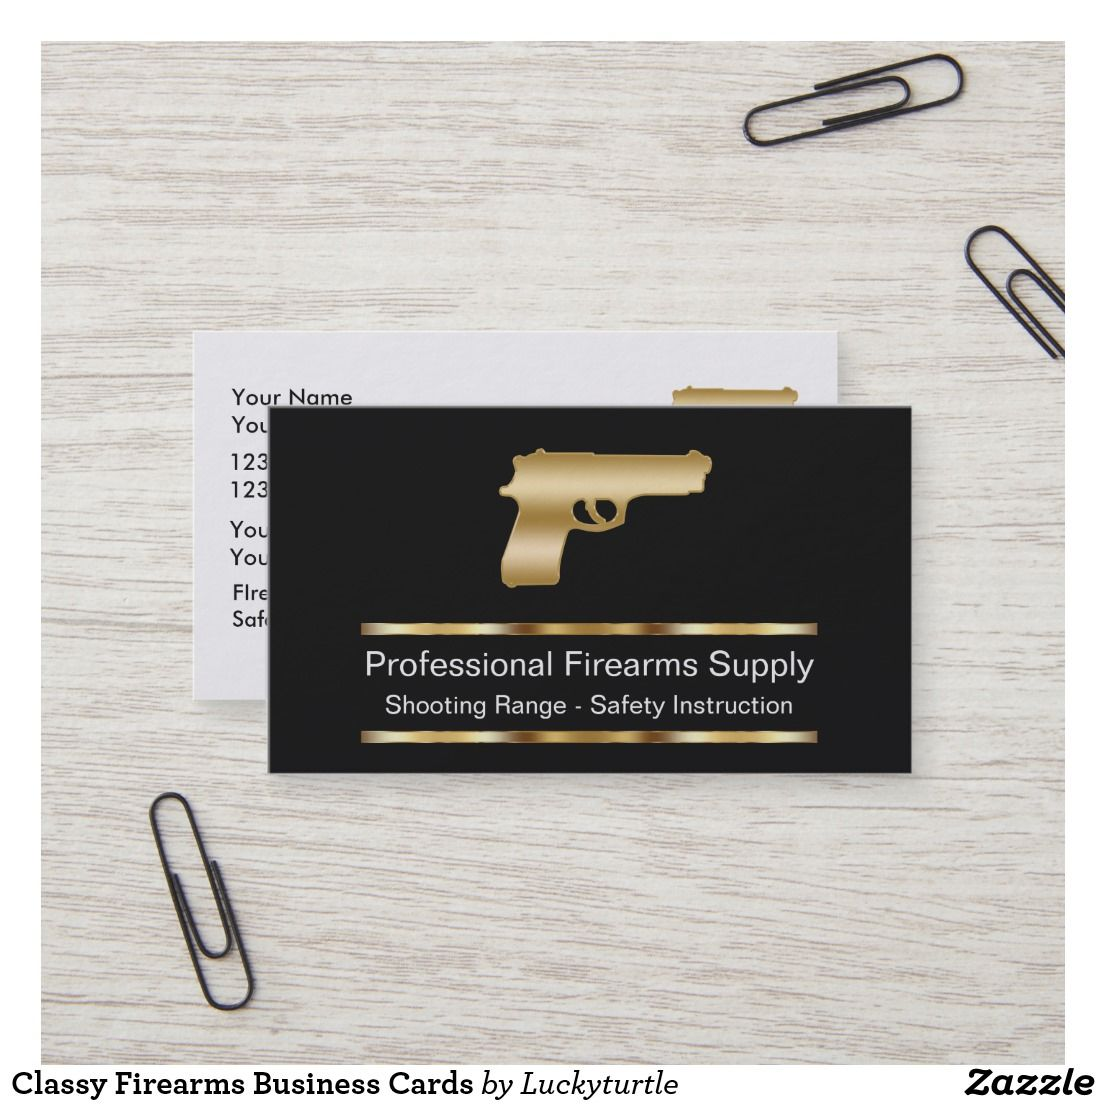 Classy Firearms Business Cards Business